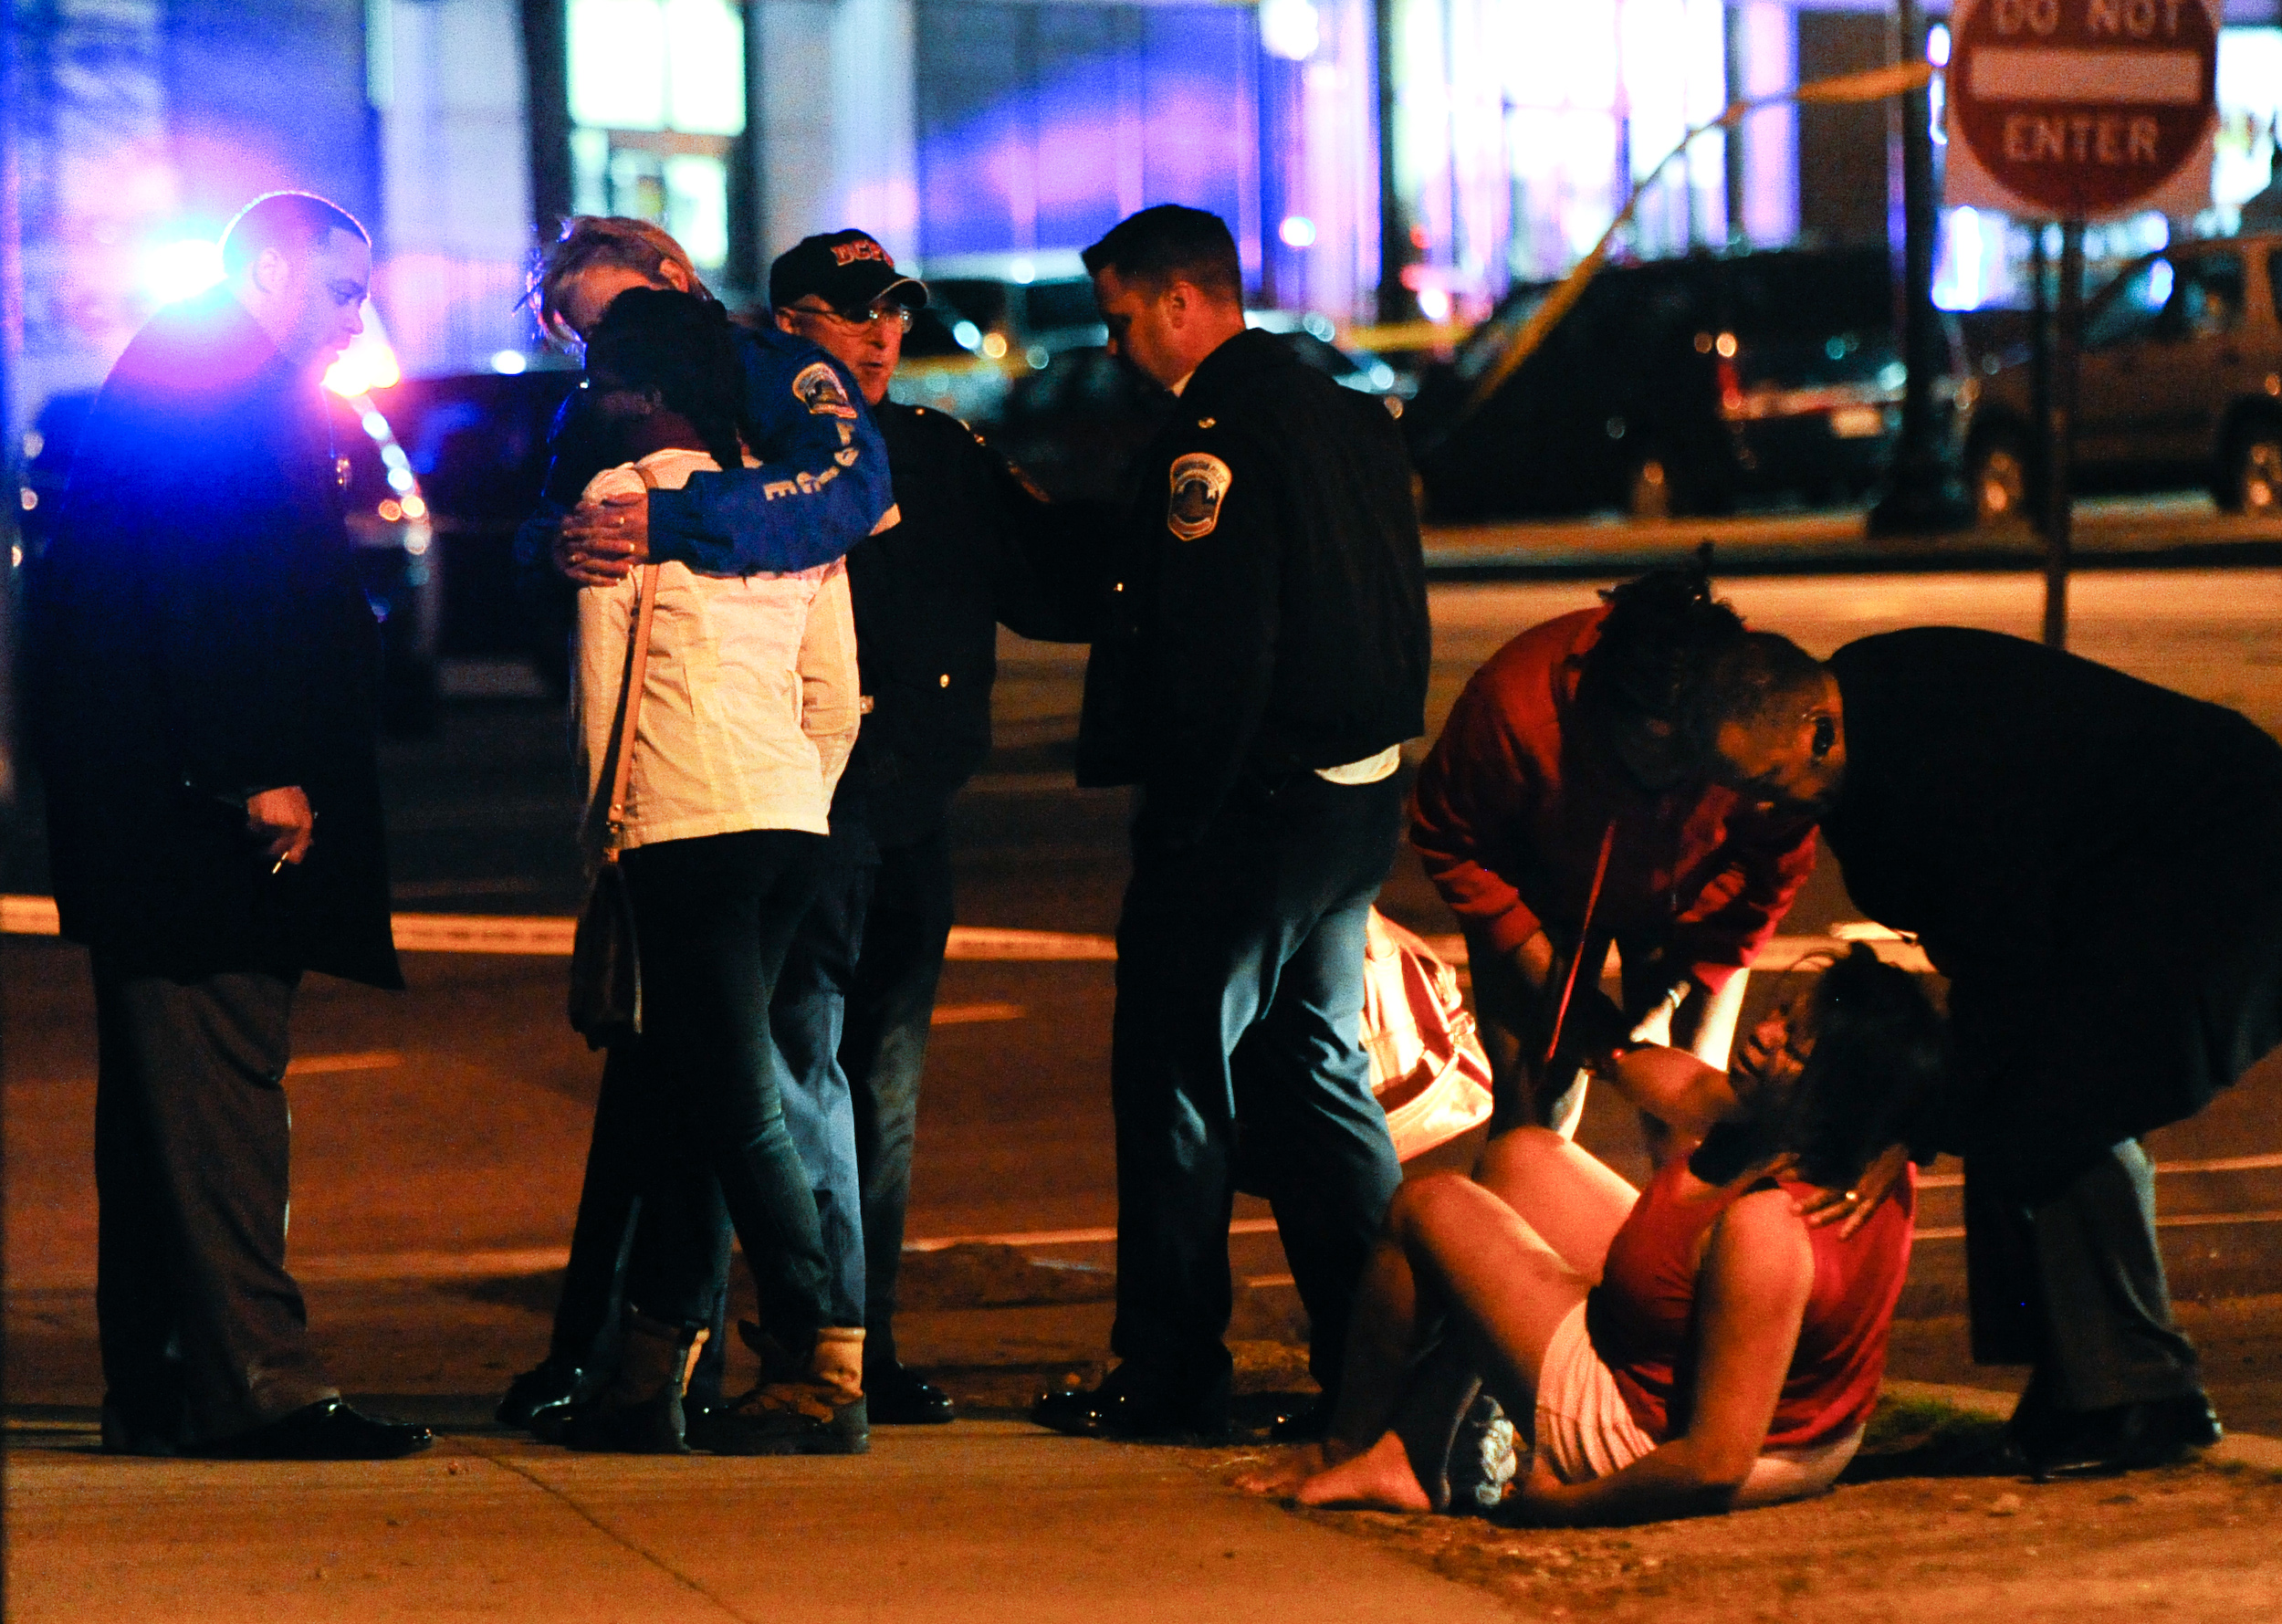 Chief Cathy Lanier, blue jacket, second from left, and other police attend to the scene of a multiple shooting with fatalities on South Capitol Street...